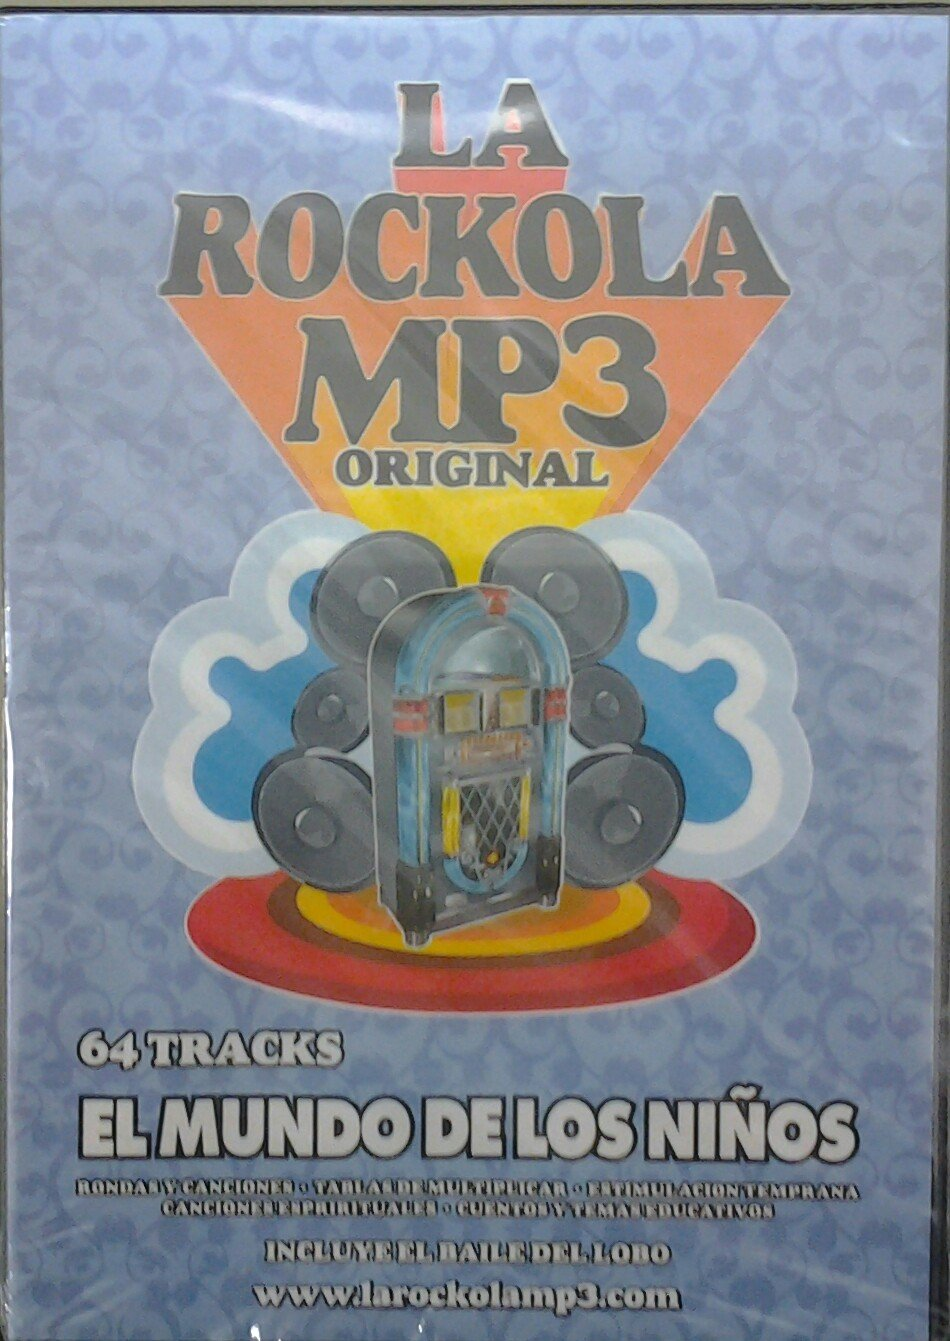 VARIOS ARTISTAS - MP3 LA ROCKOLA MP3 ORIGINAL SENTIMIENTO LLANERO - Amazon.com Music